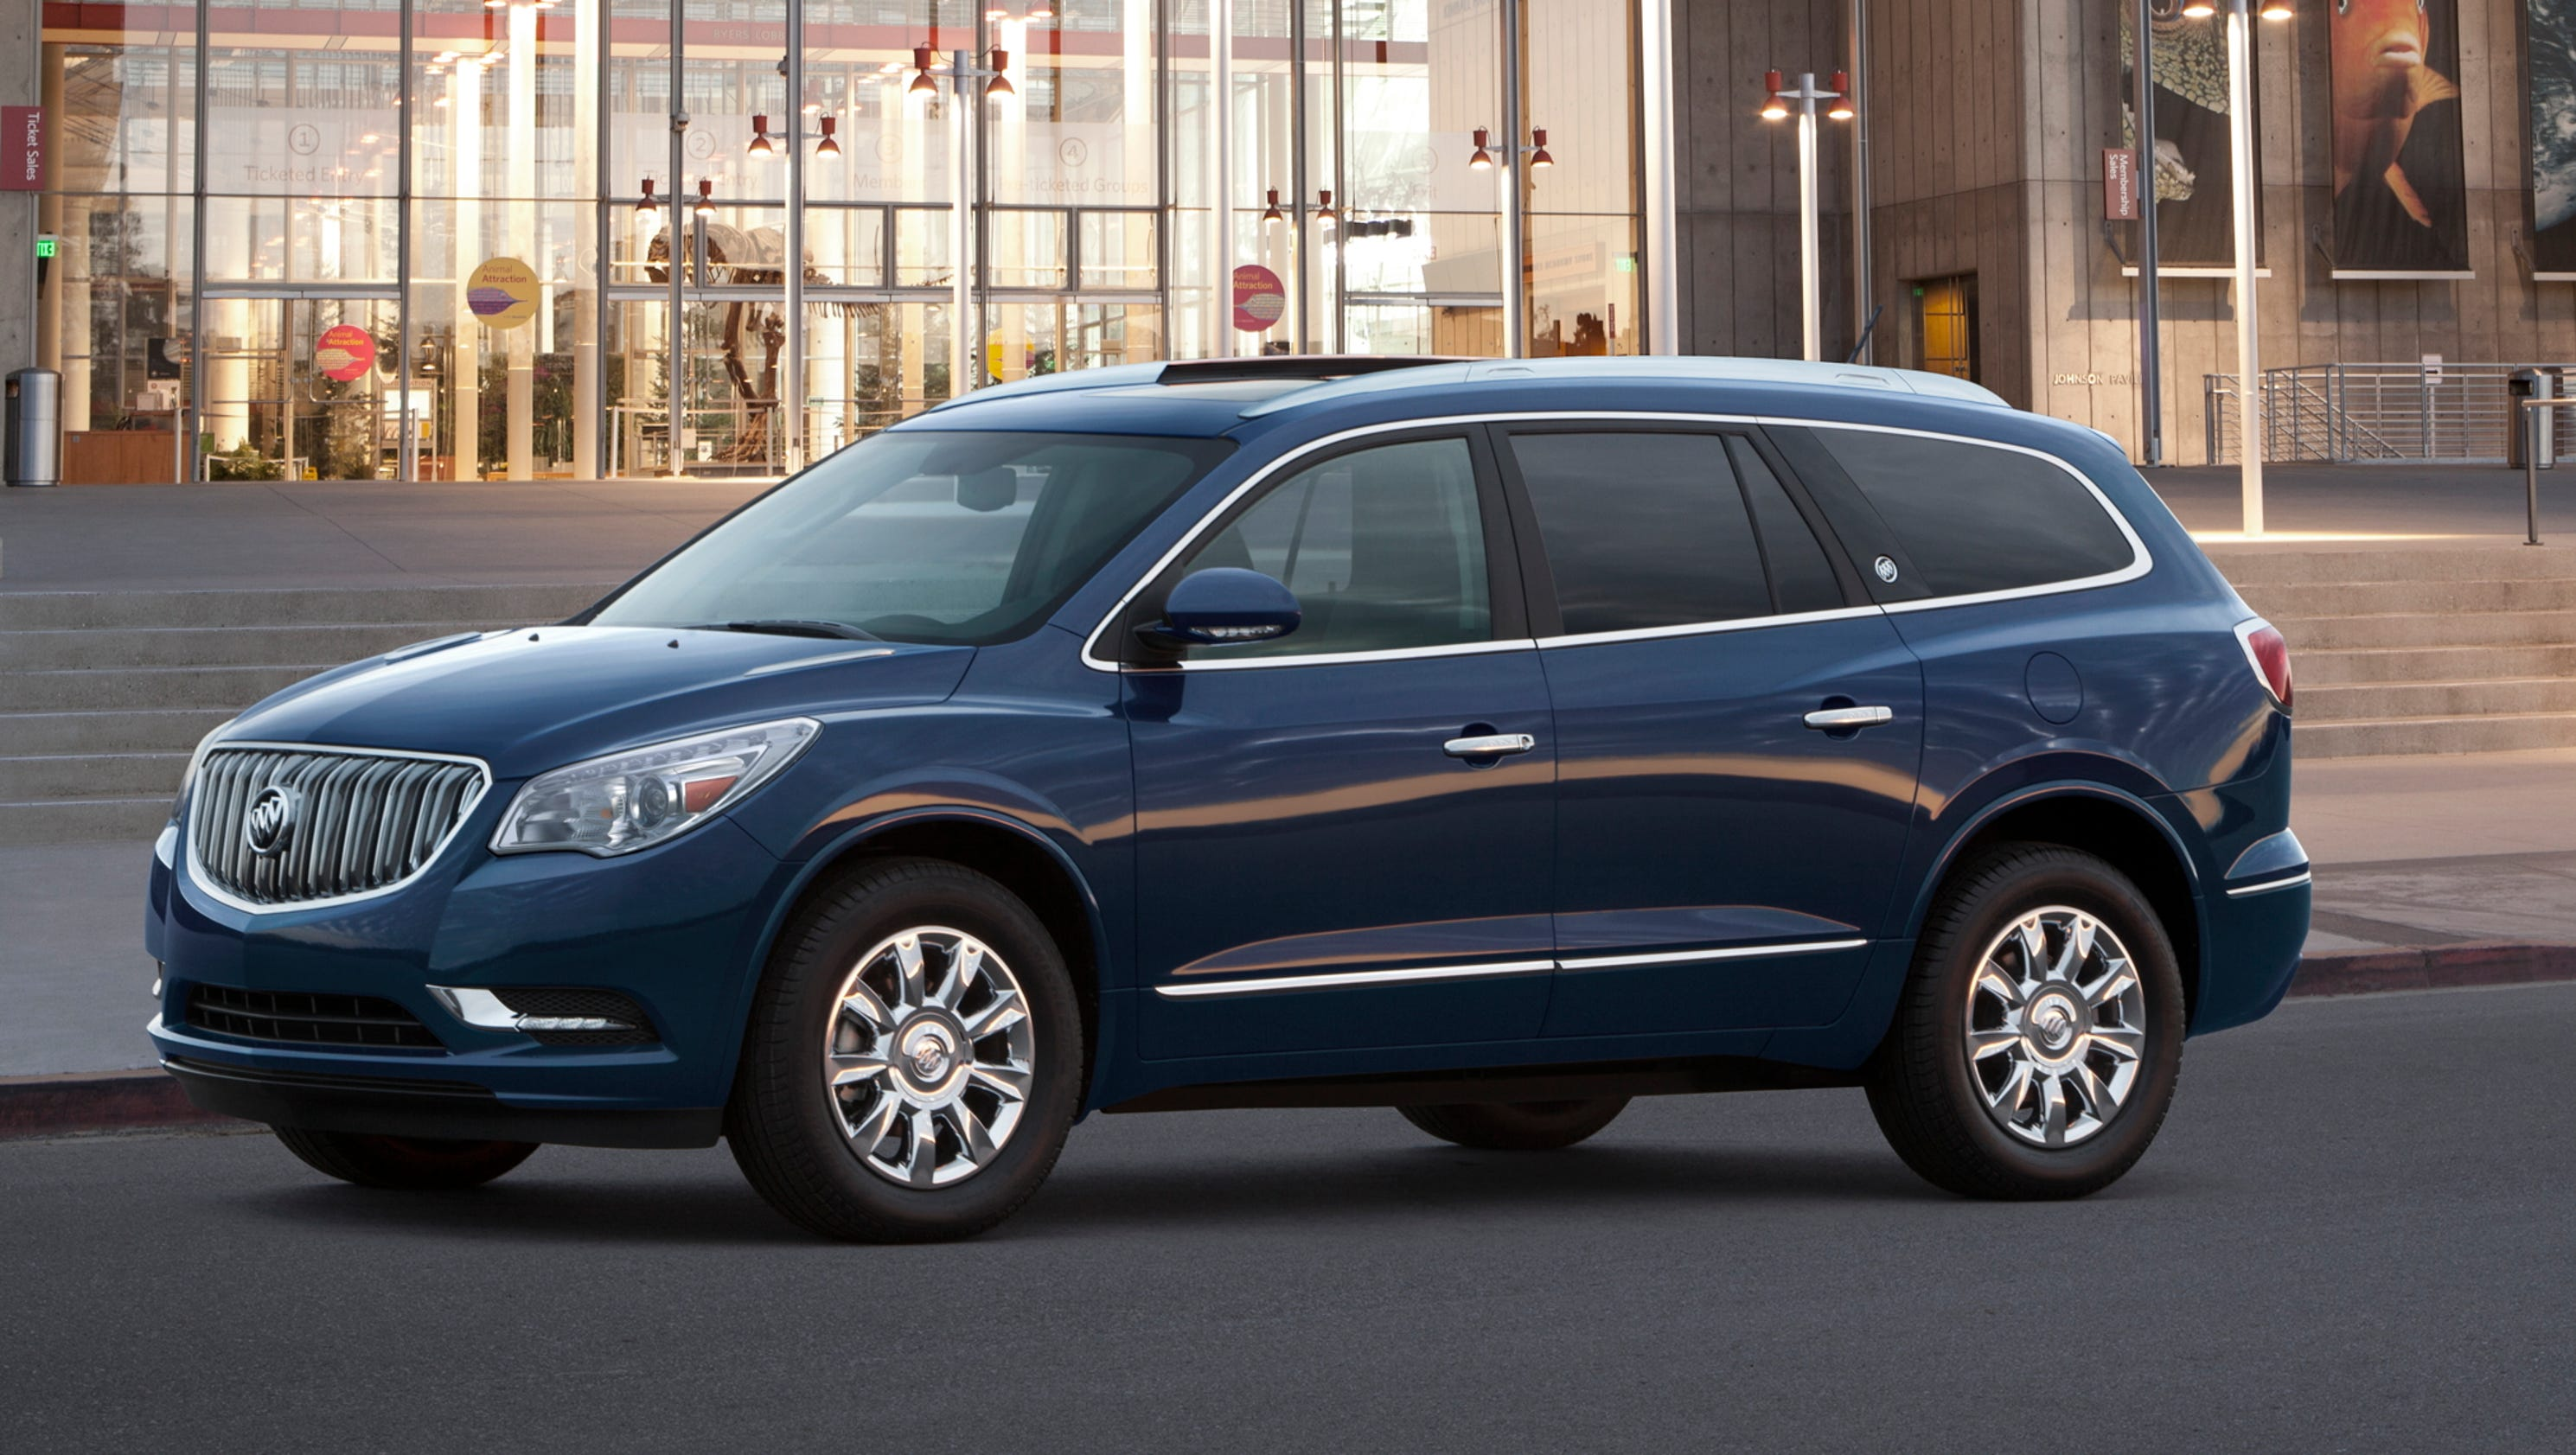 trax encore earn ratings safety buick h chevrolet equinox top news